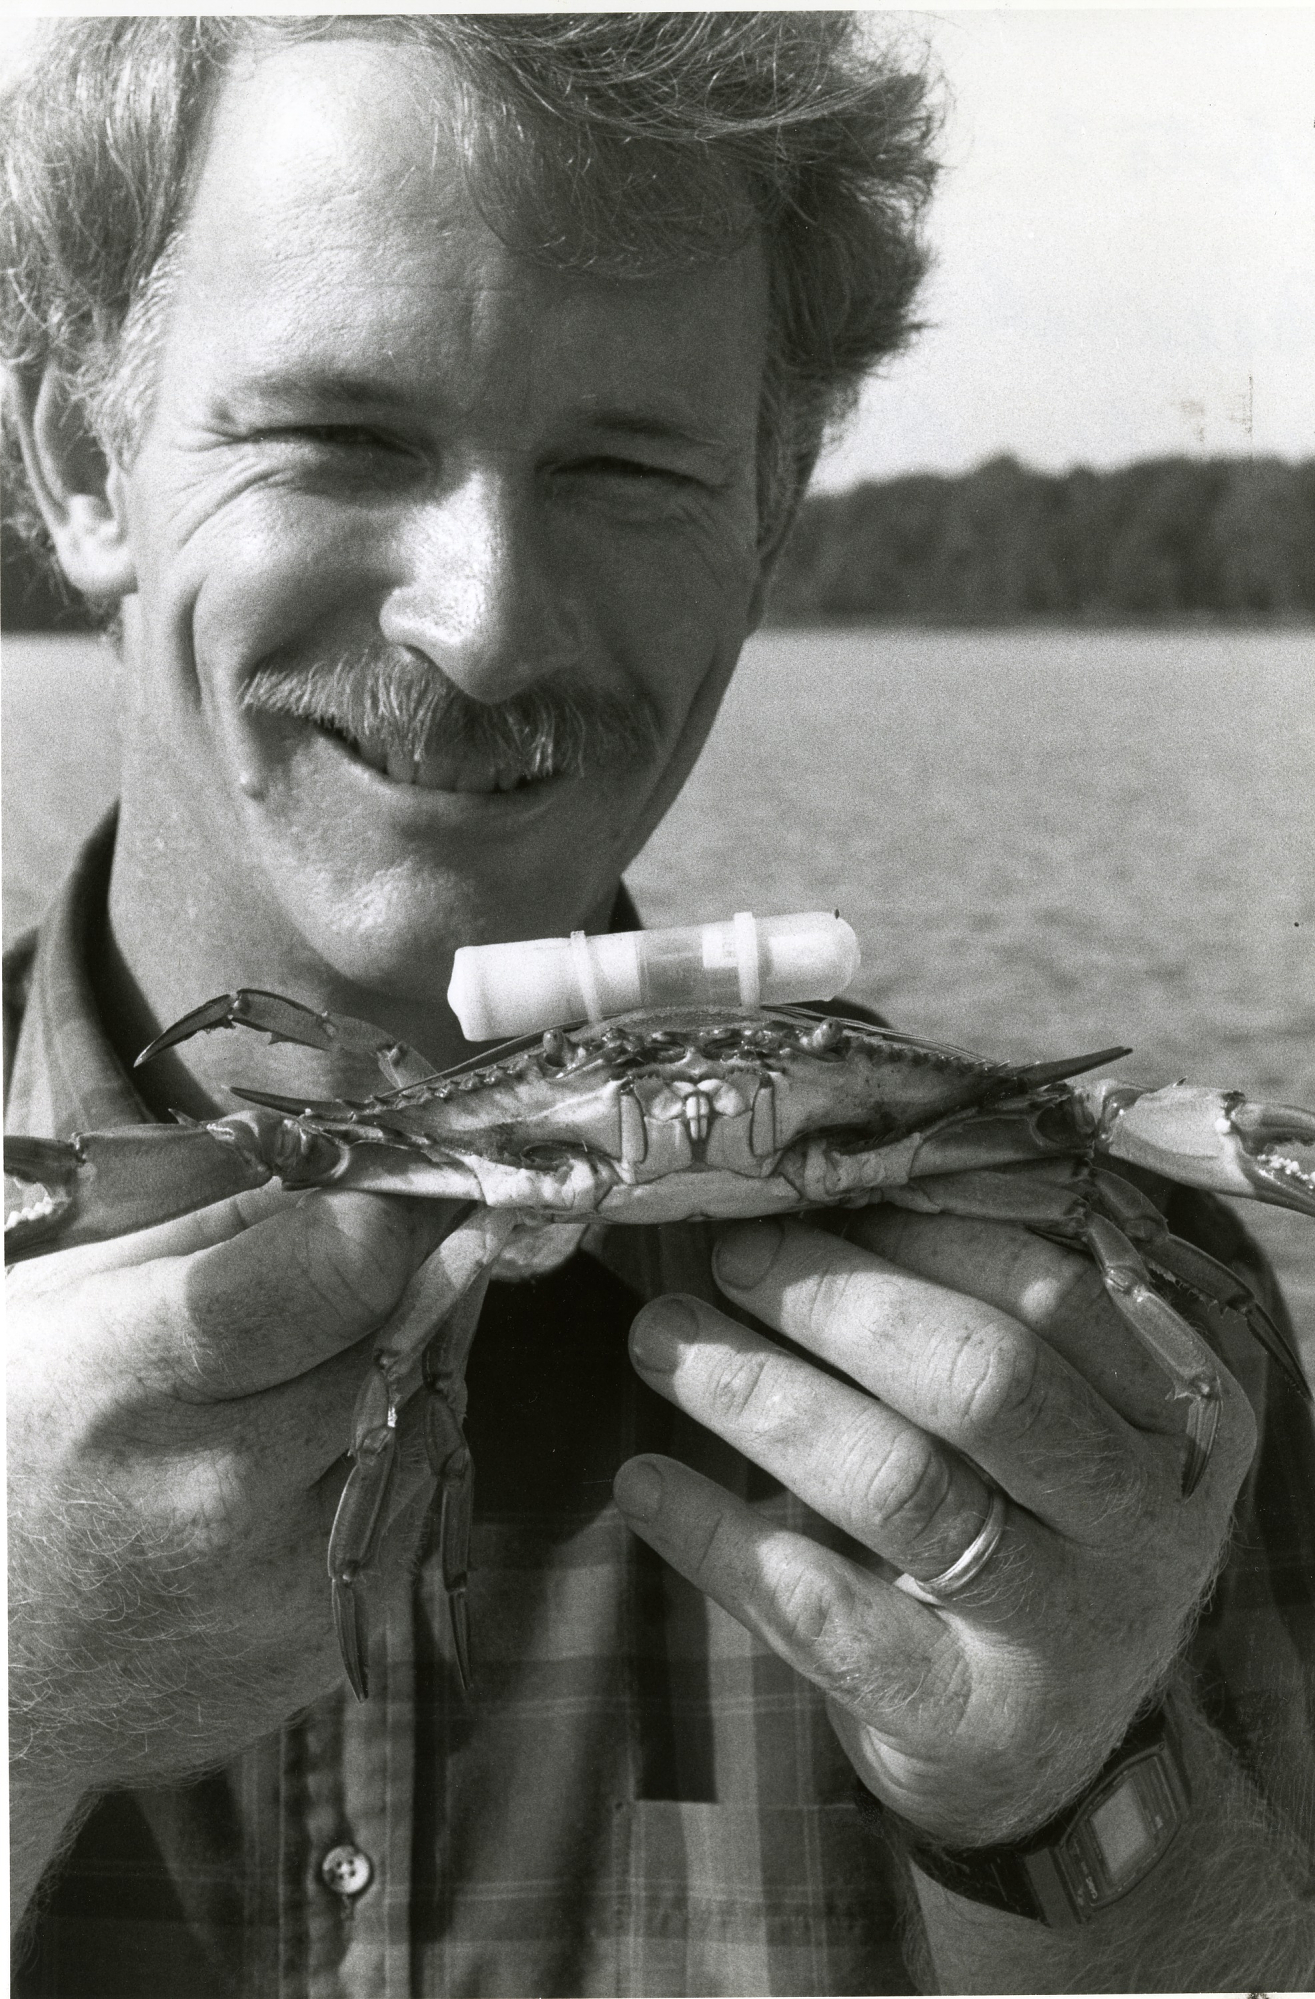 Anson Hines of the Smithsonian Environmental Research Center, holding a crab with a telemeter tracke